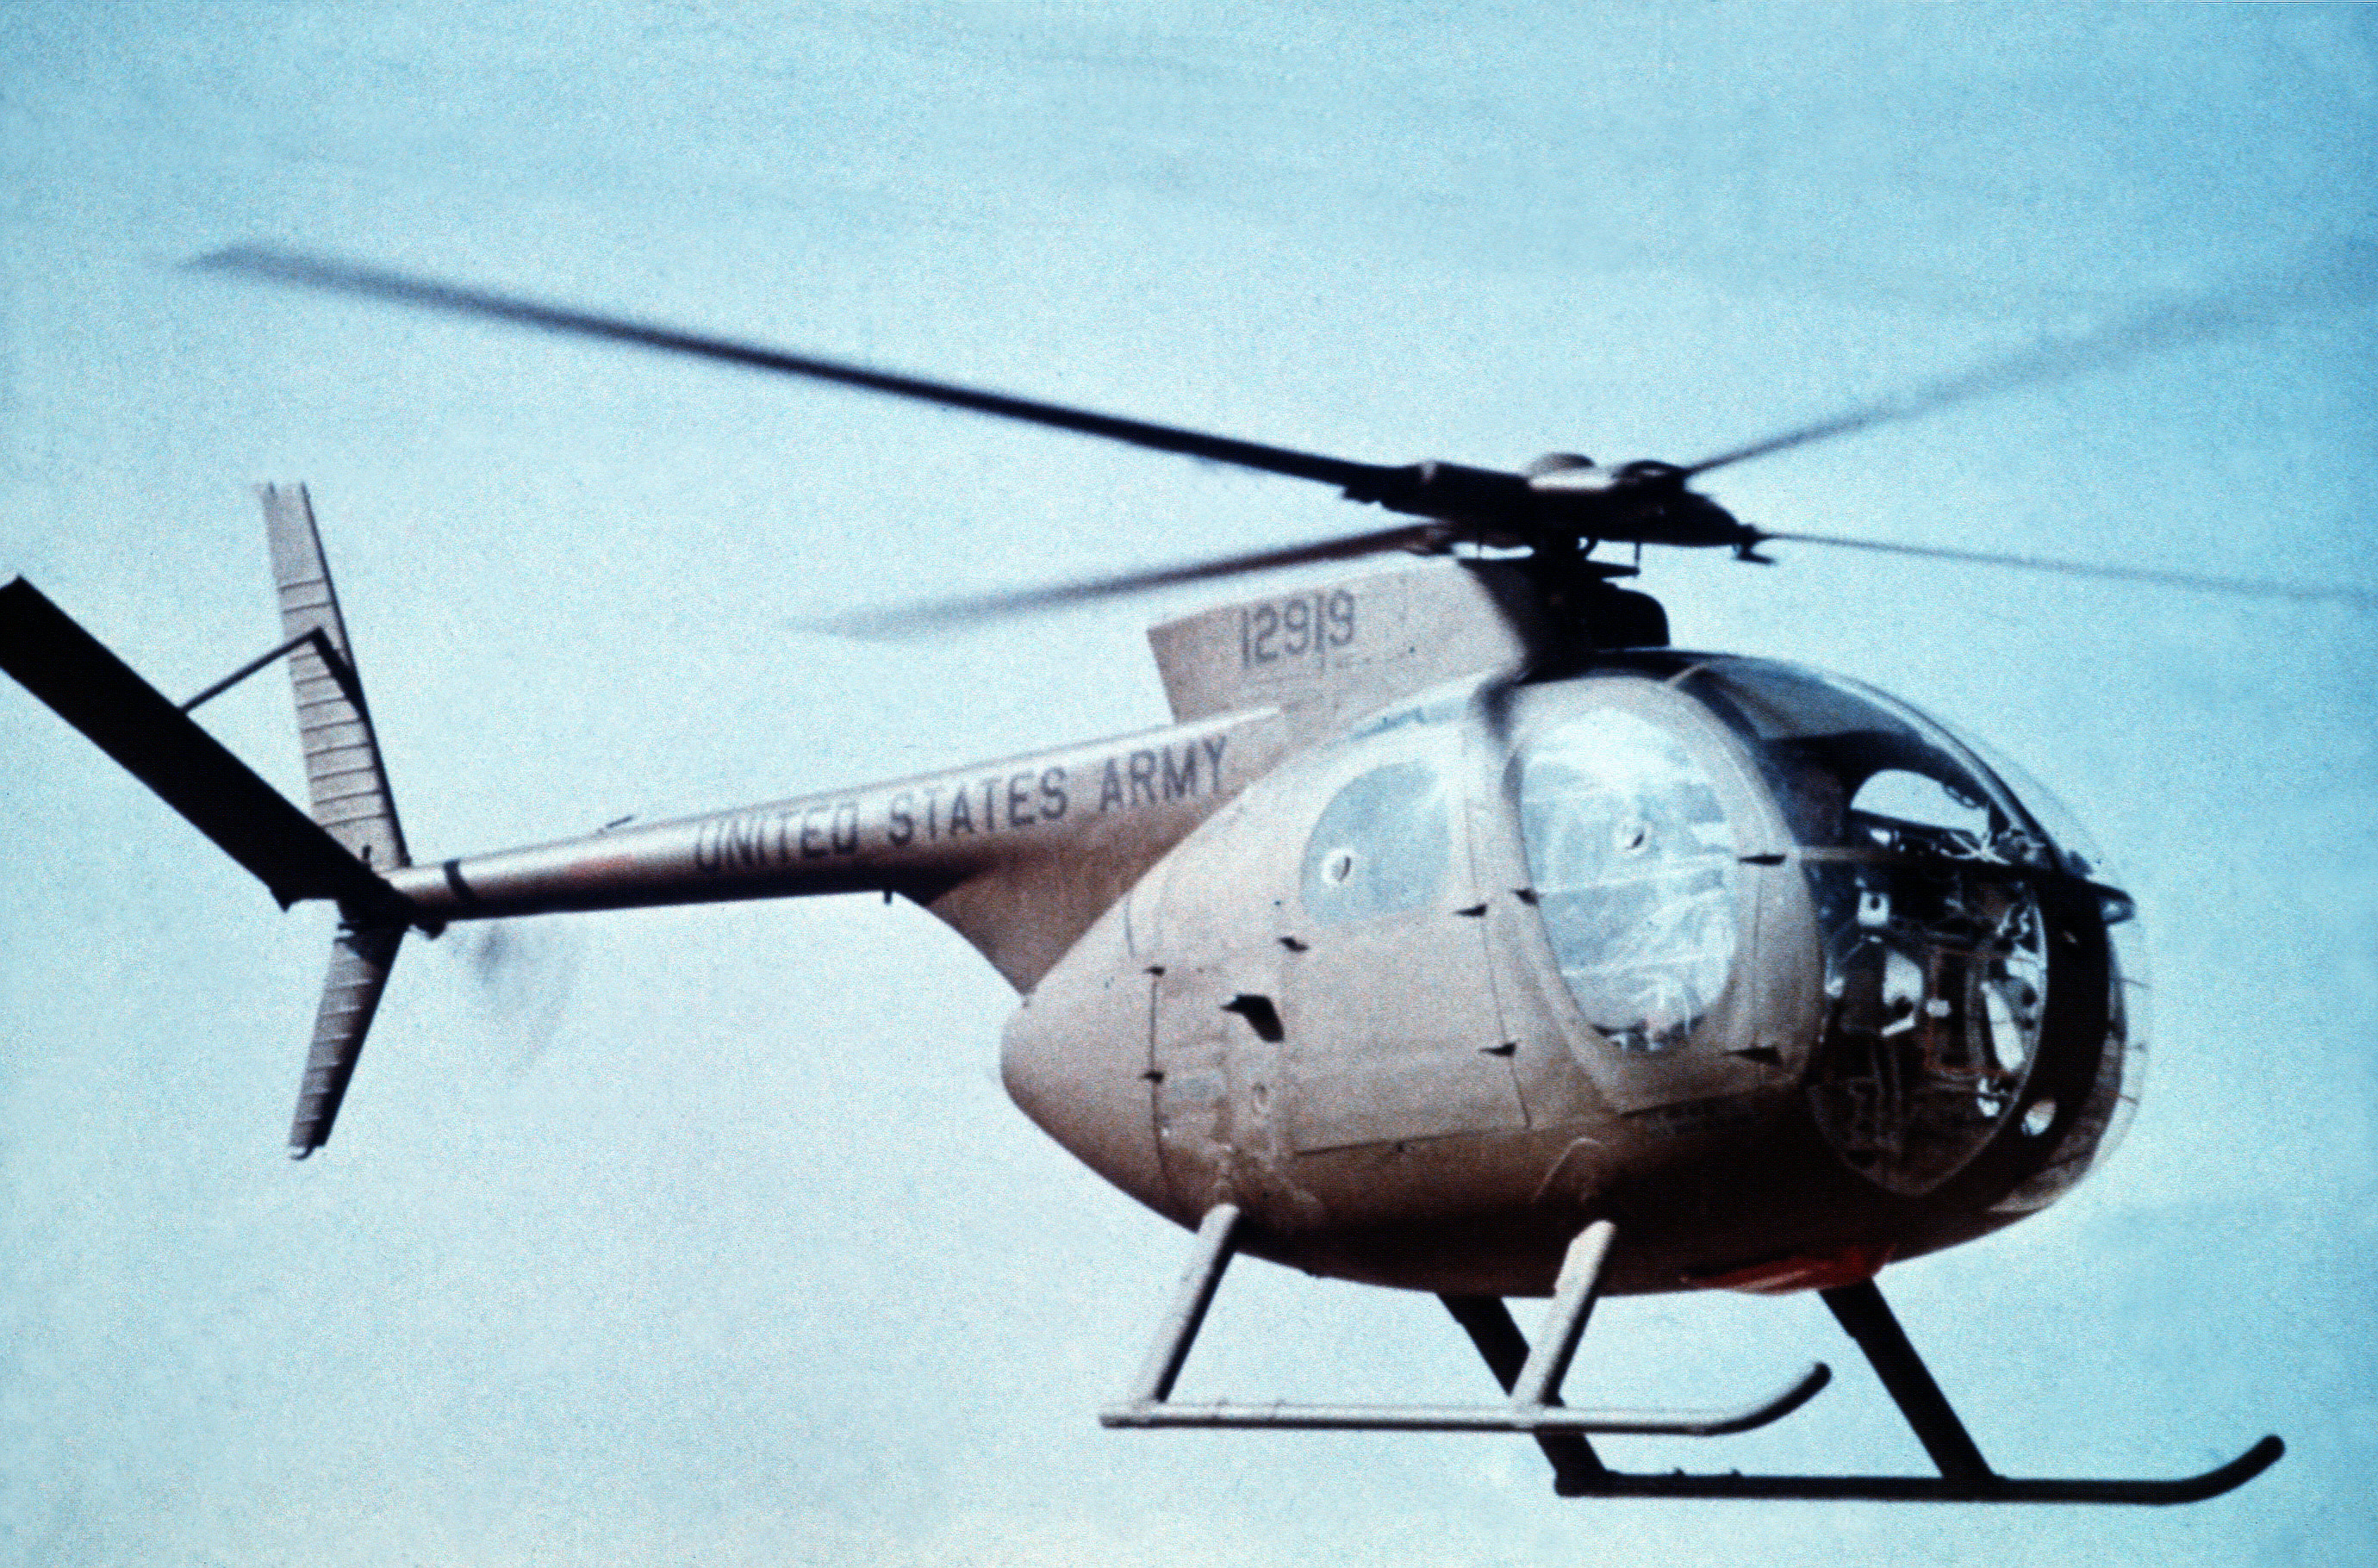 Depiction of Hughes OH-6 Cayuse